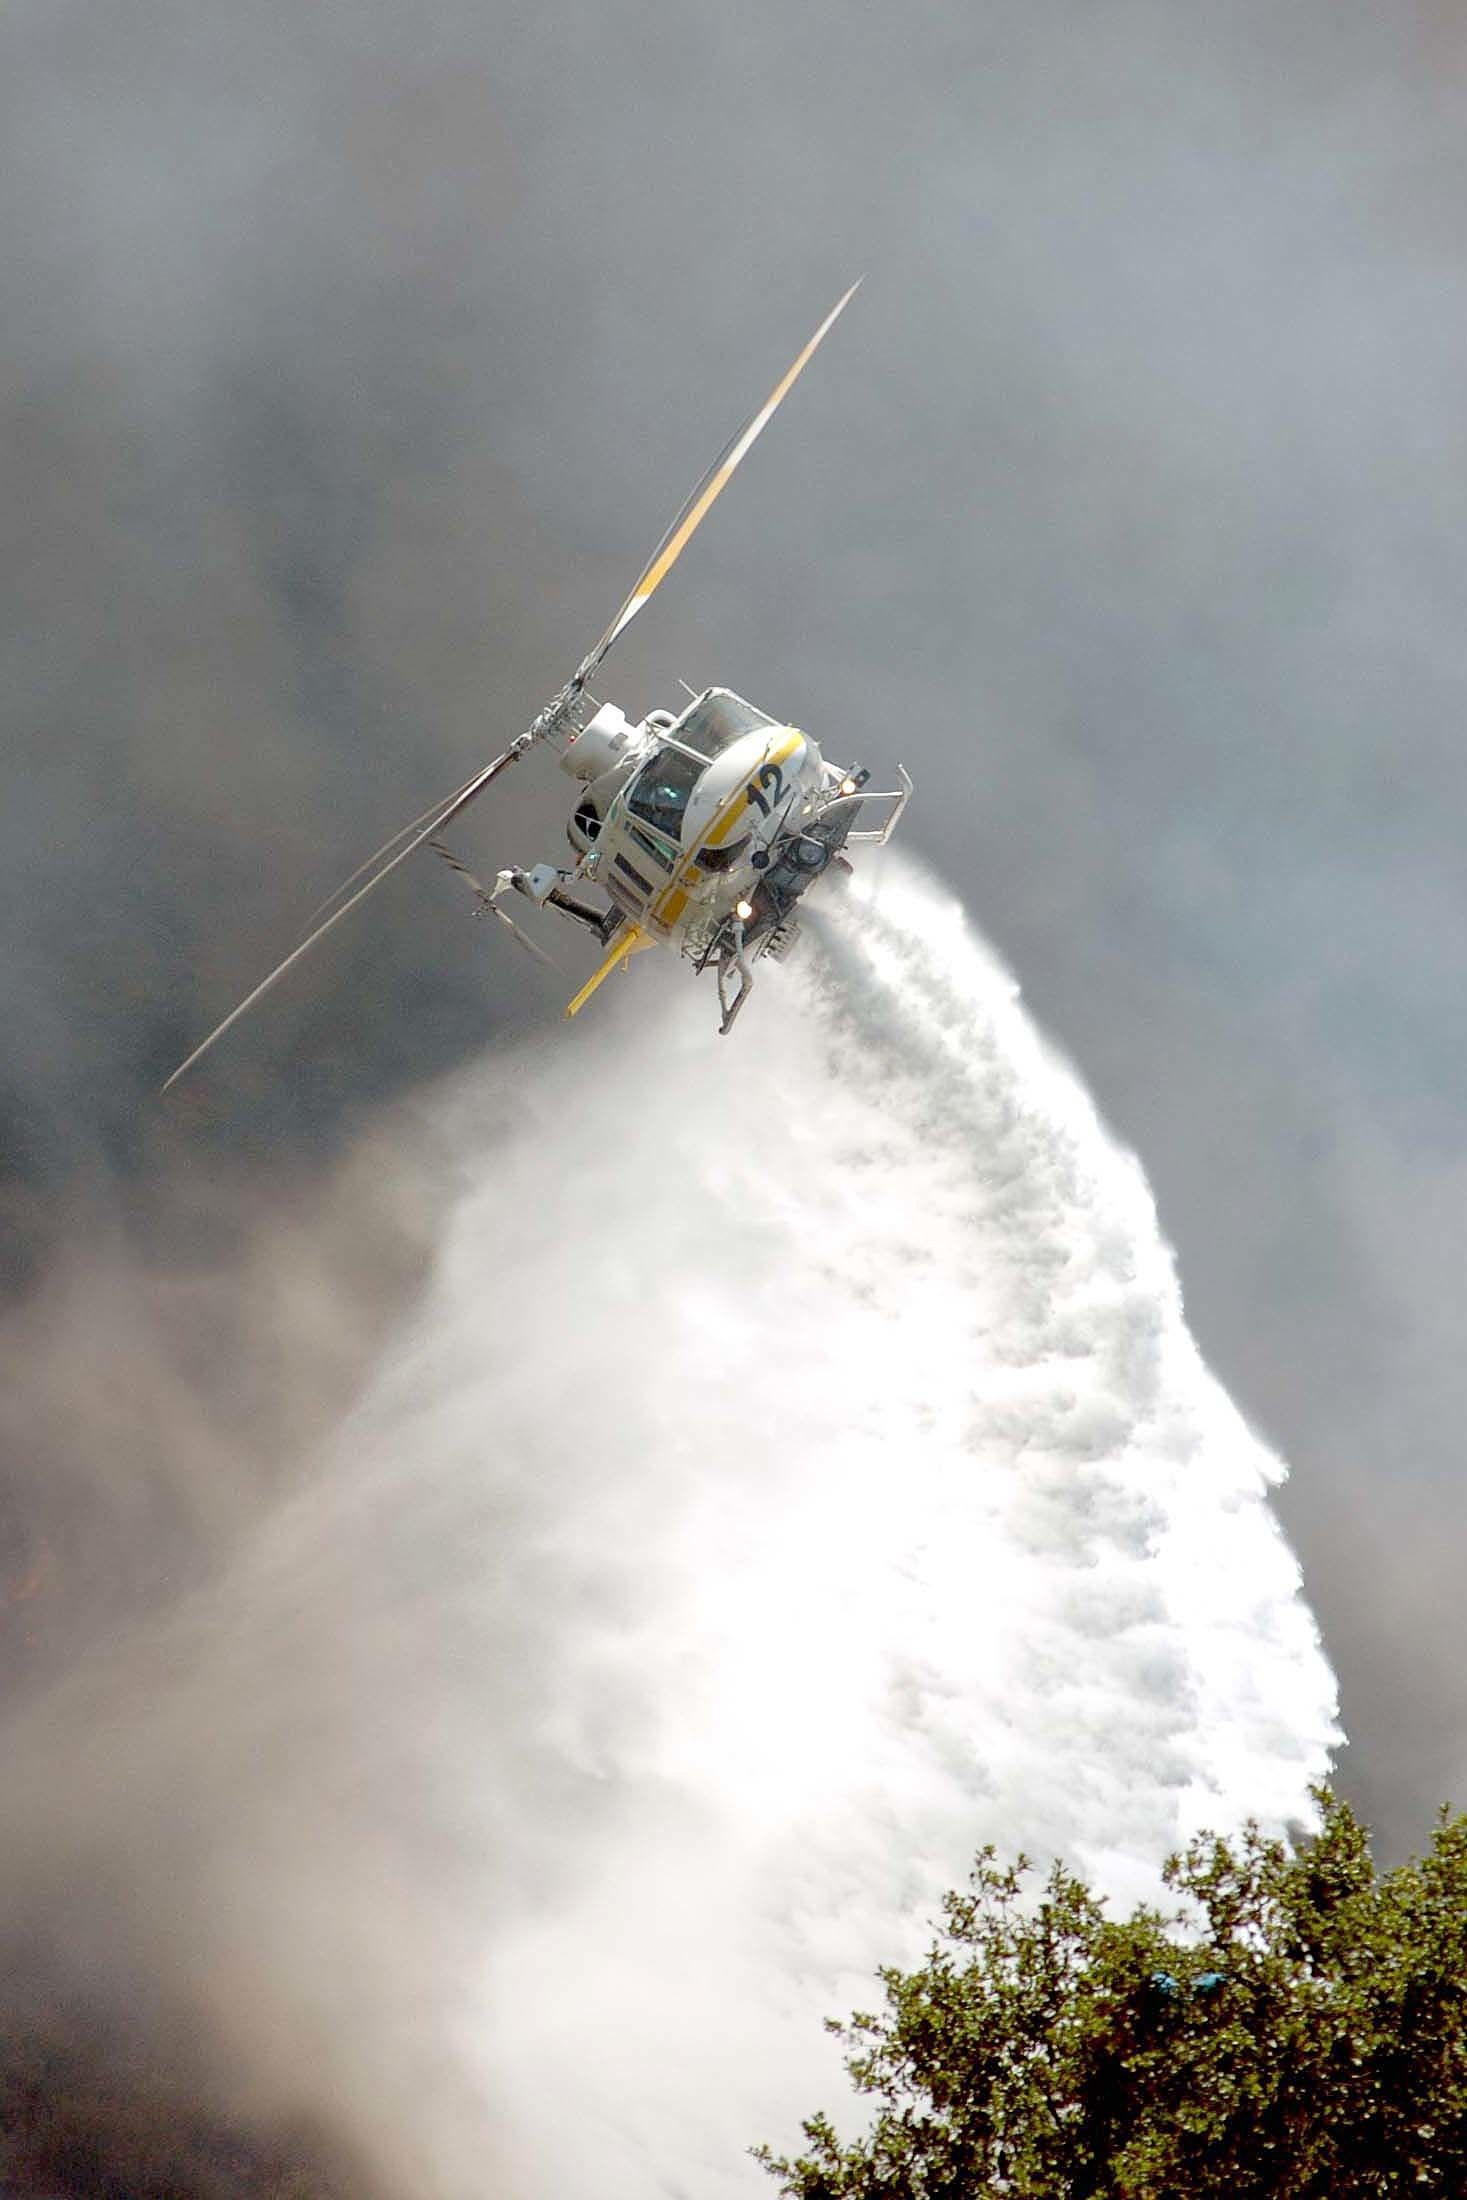 A Los Angeles County Fire Department Helicopter Makes A Drop On A Brush Fire In Santa Clarita Ca Fire Rescue Helicopter Wildland Firefighter